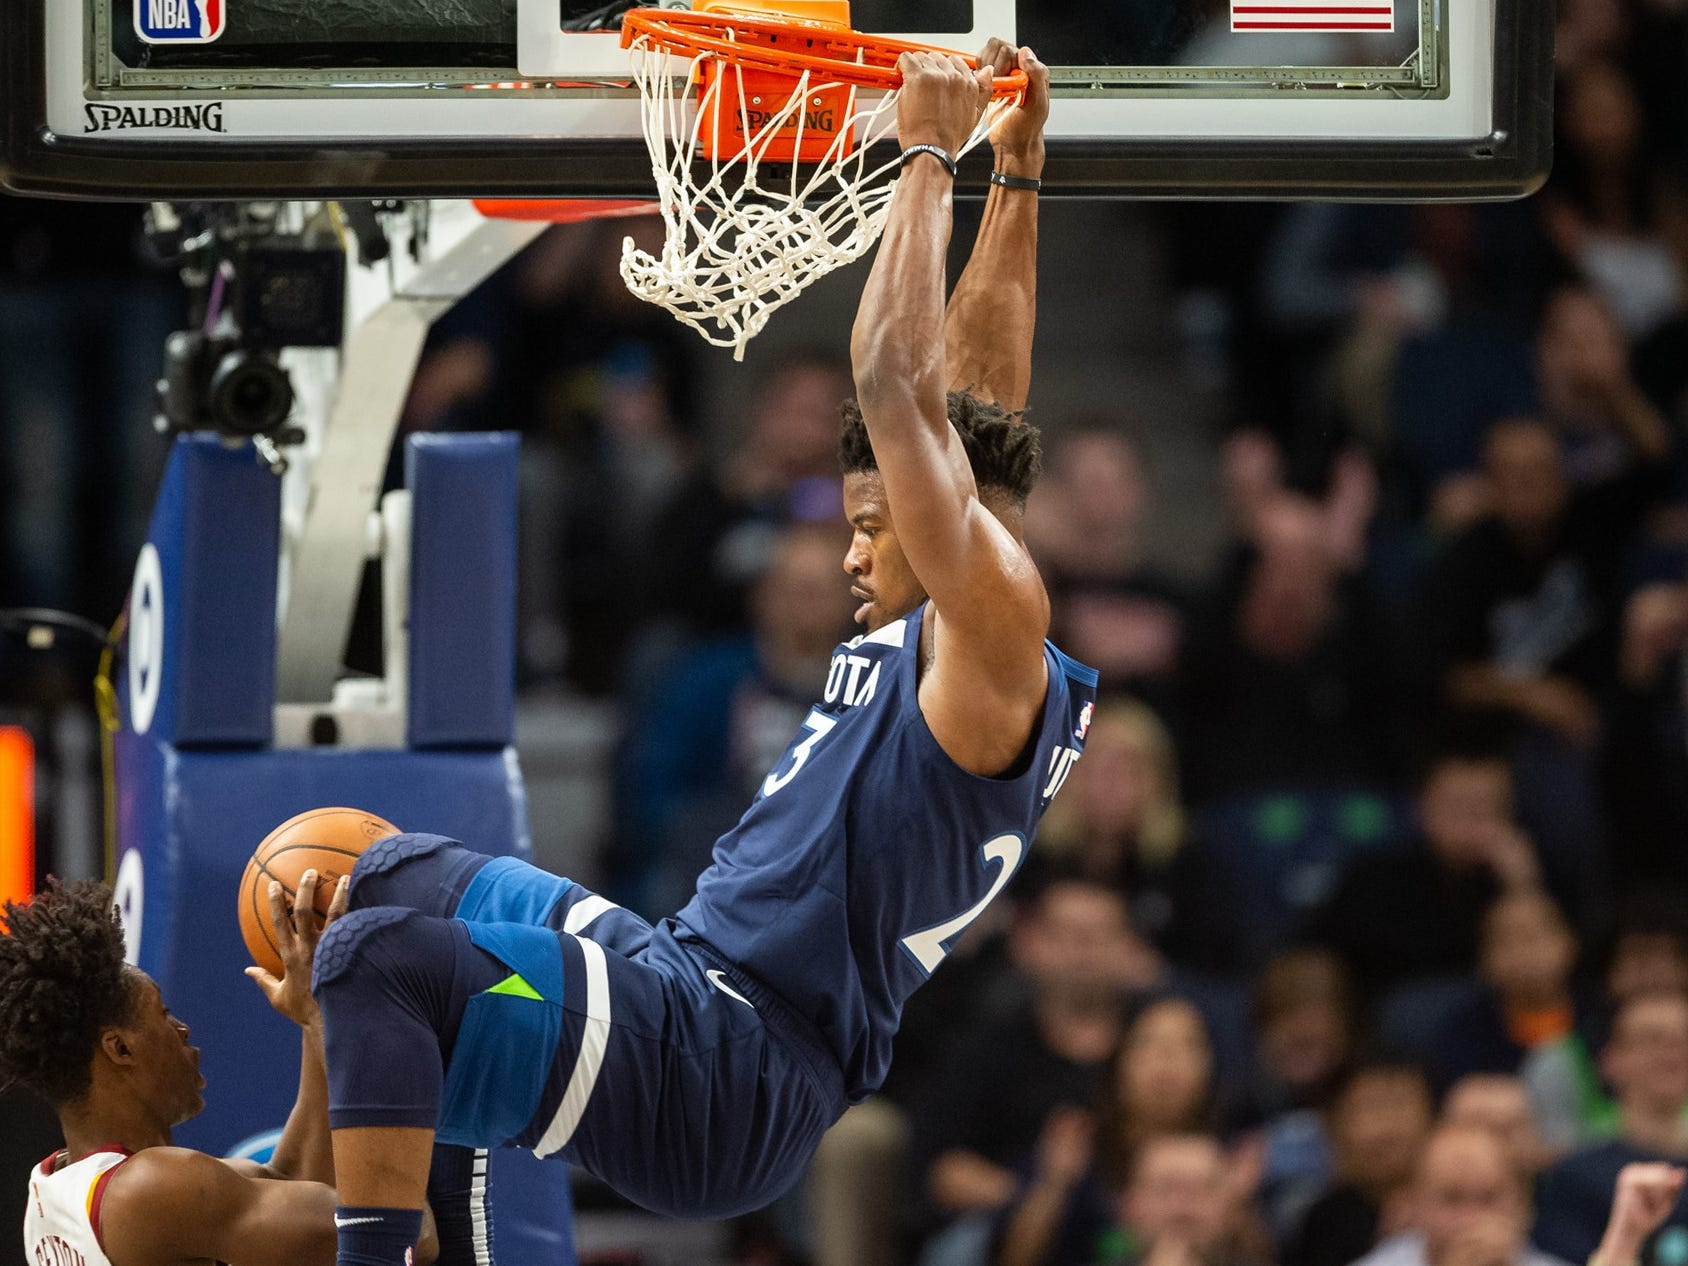 Oct. 19: Timberwolves forward Jimmy Butler throws down a two-handed flush against the Cavaliers.